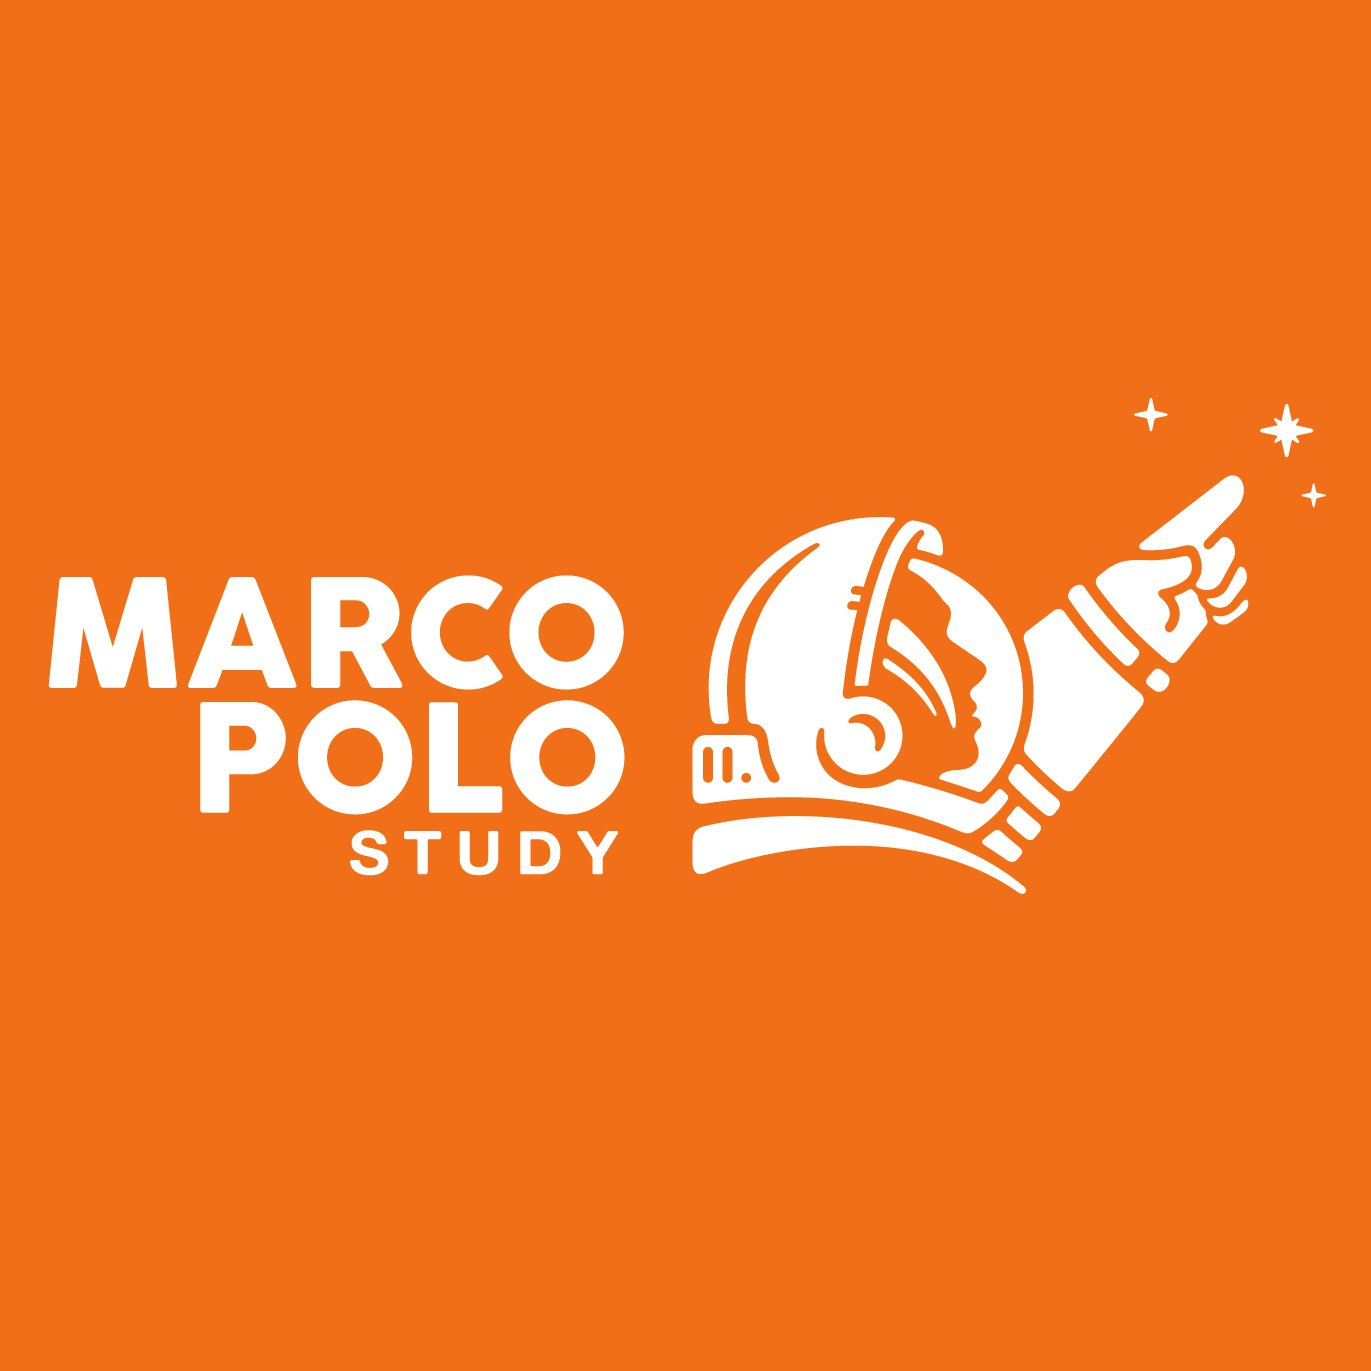 3be26db84 Marco Polo Study ( marcopolostudy)